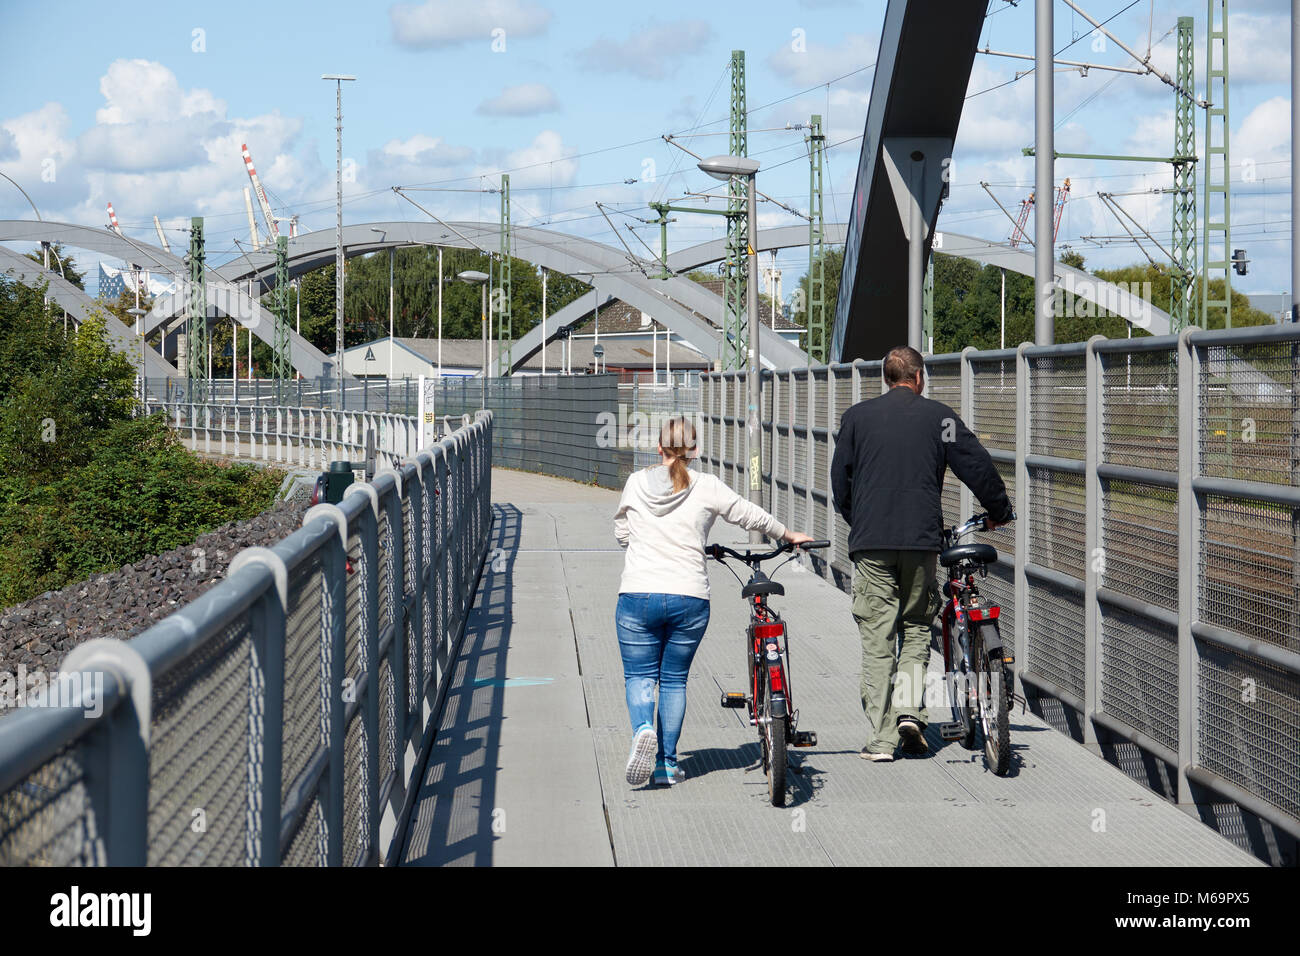 A married couple walking with bicycles on a bridge. - Stock Image